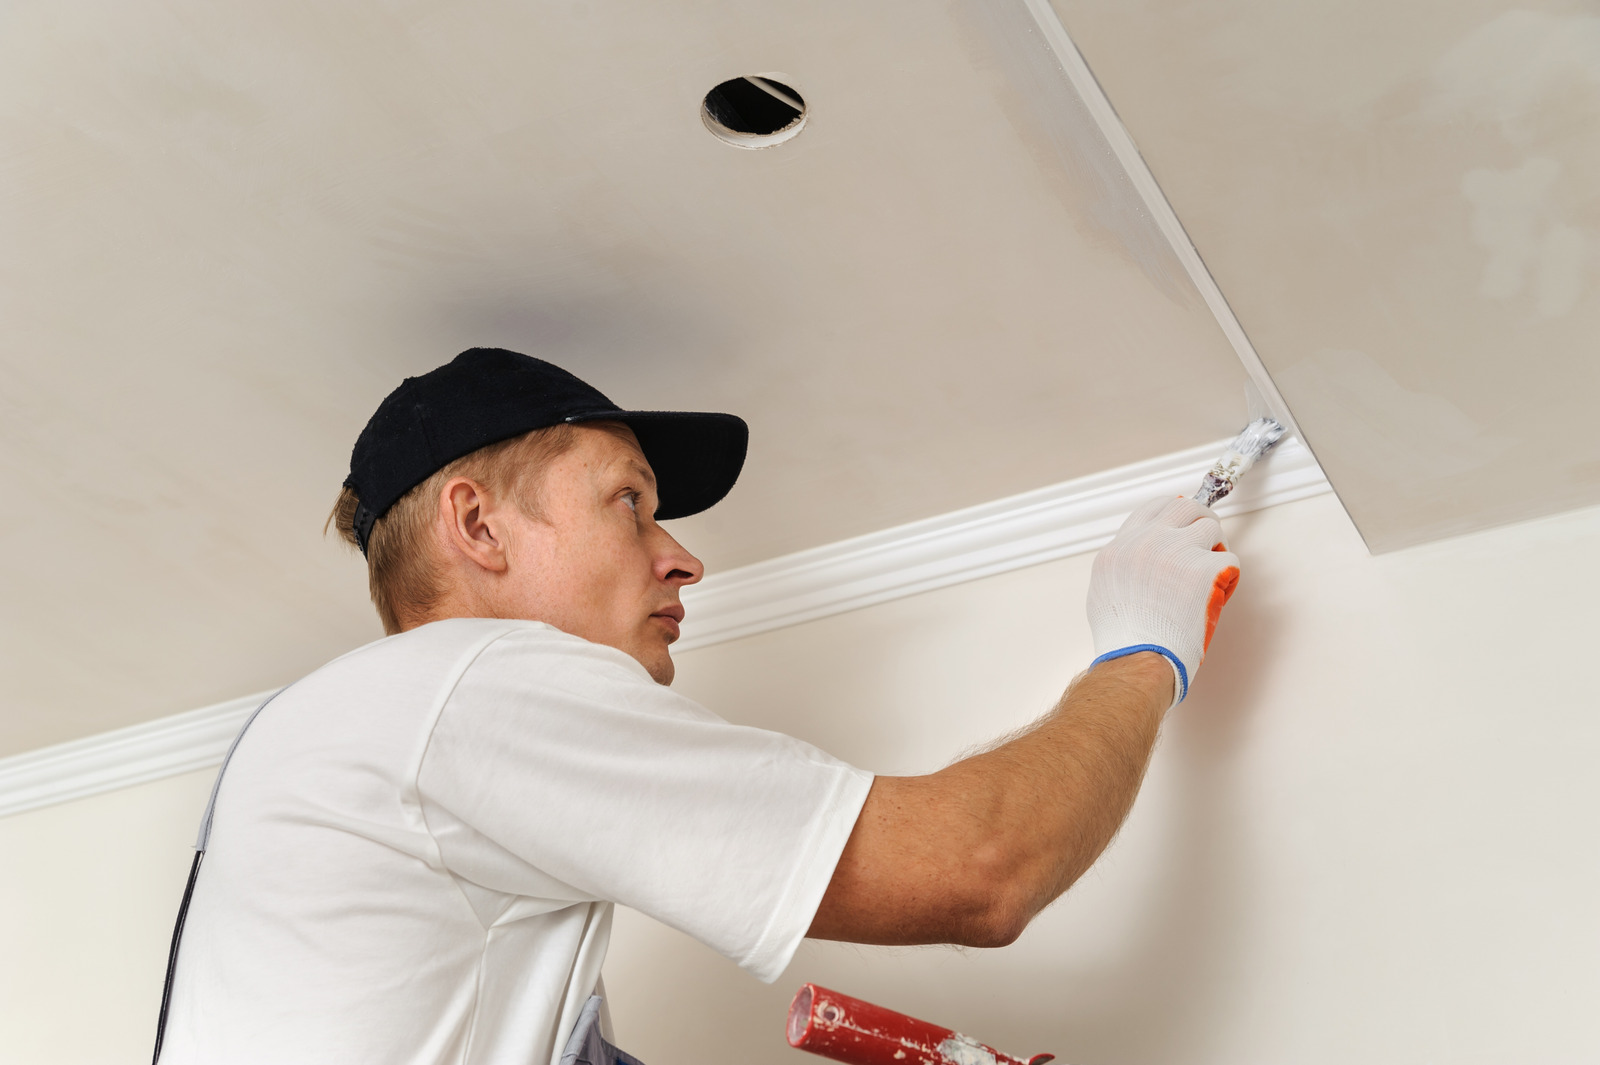 Painter is painting walls and ceilings